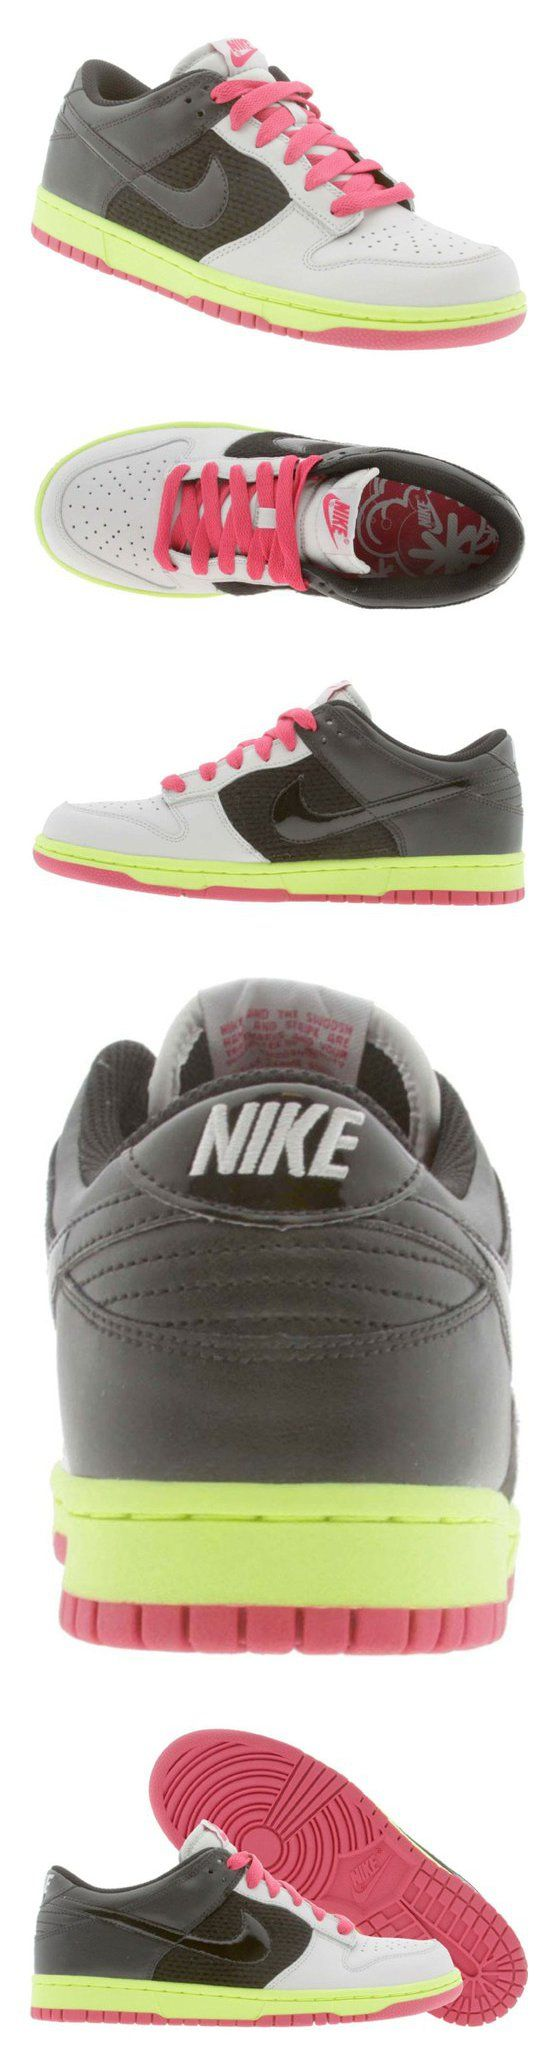 $237.51 - [317813-004] NIKE DUNK LOW WOMENS SHOES NEUTRAL GREY/BLACK-BERRY-VOLT. #shoes #nike #2011